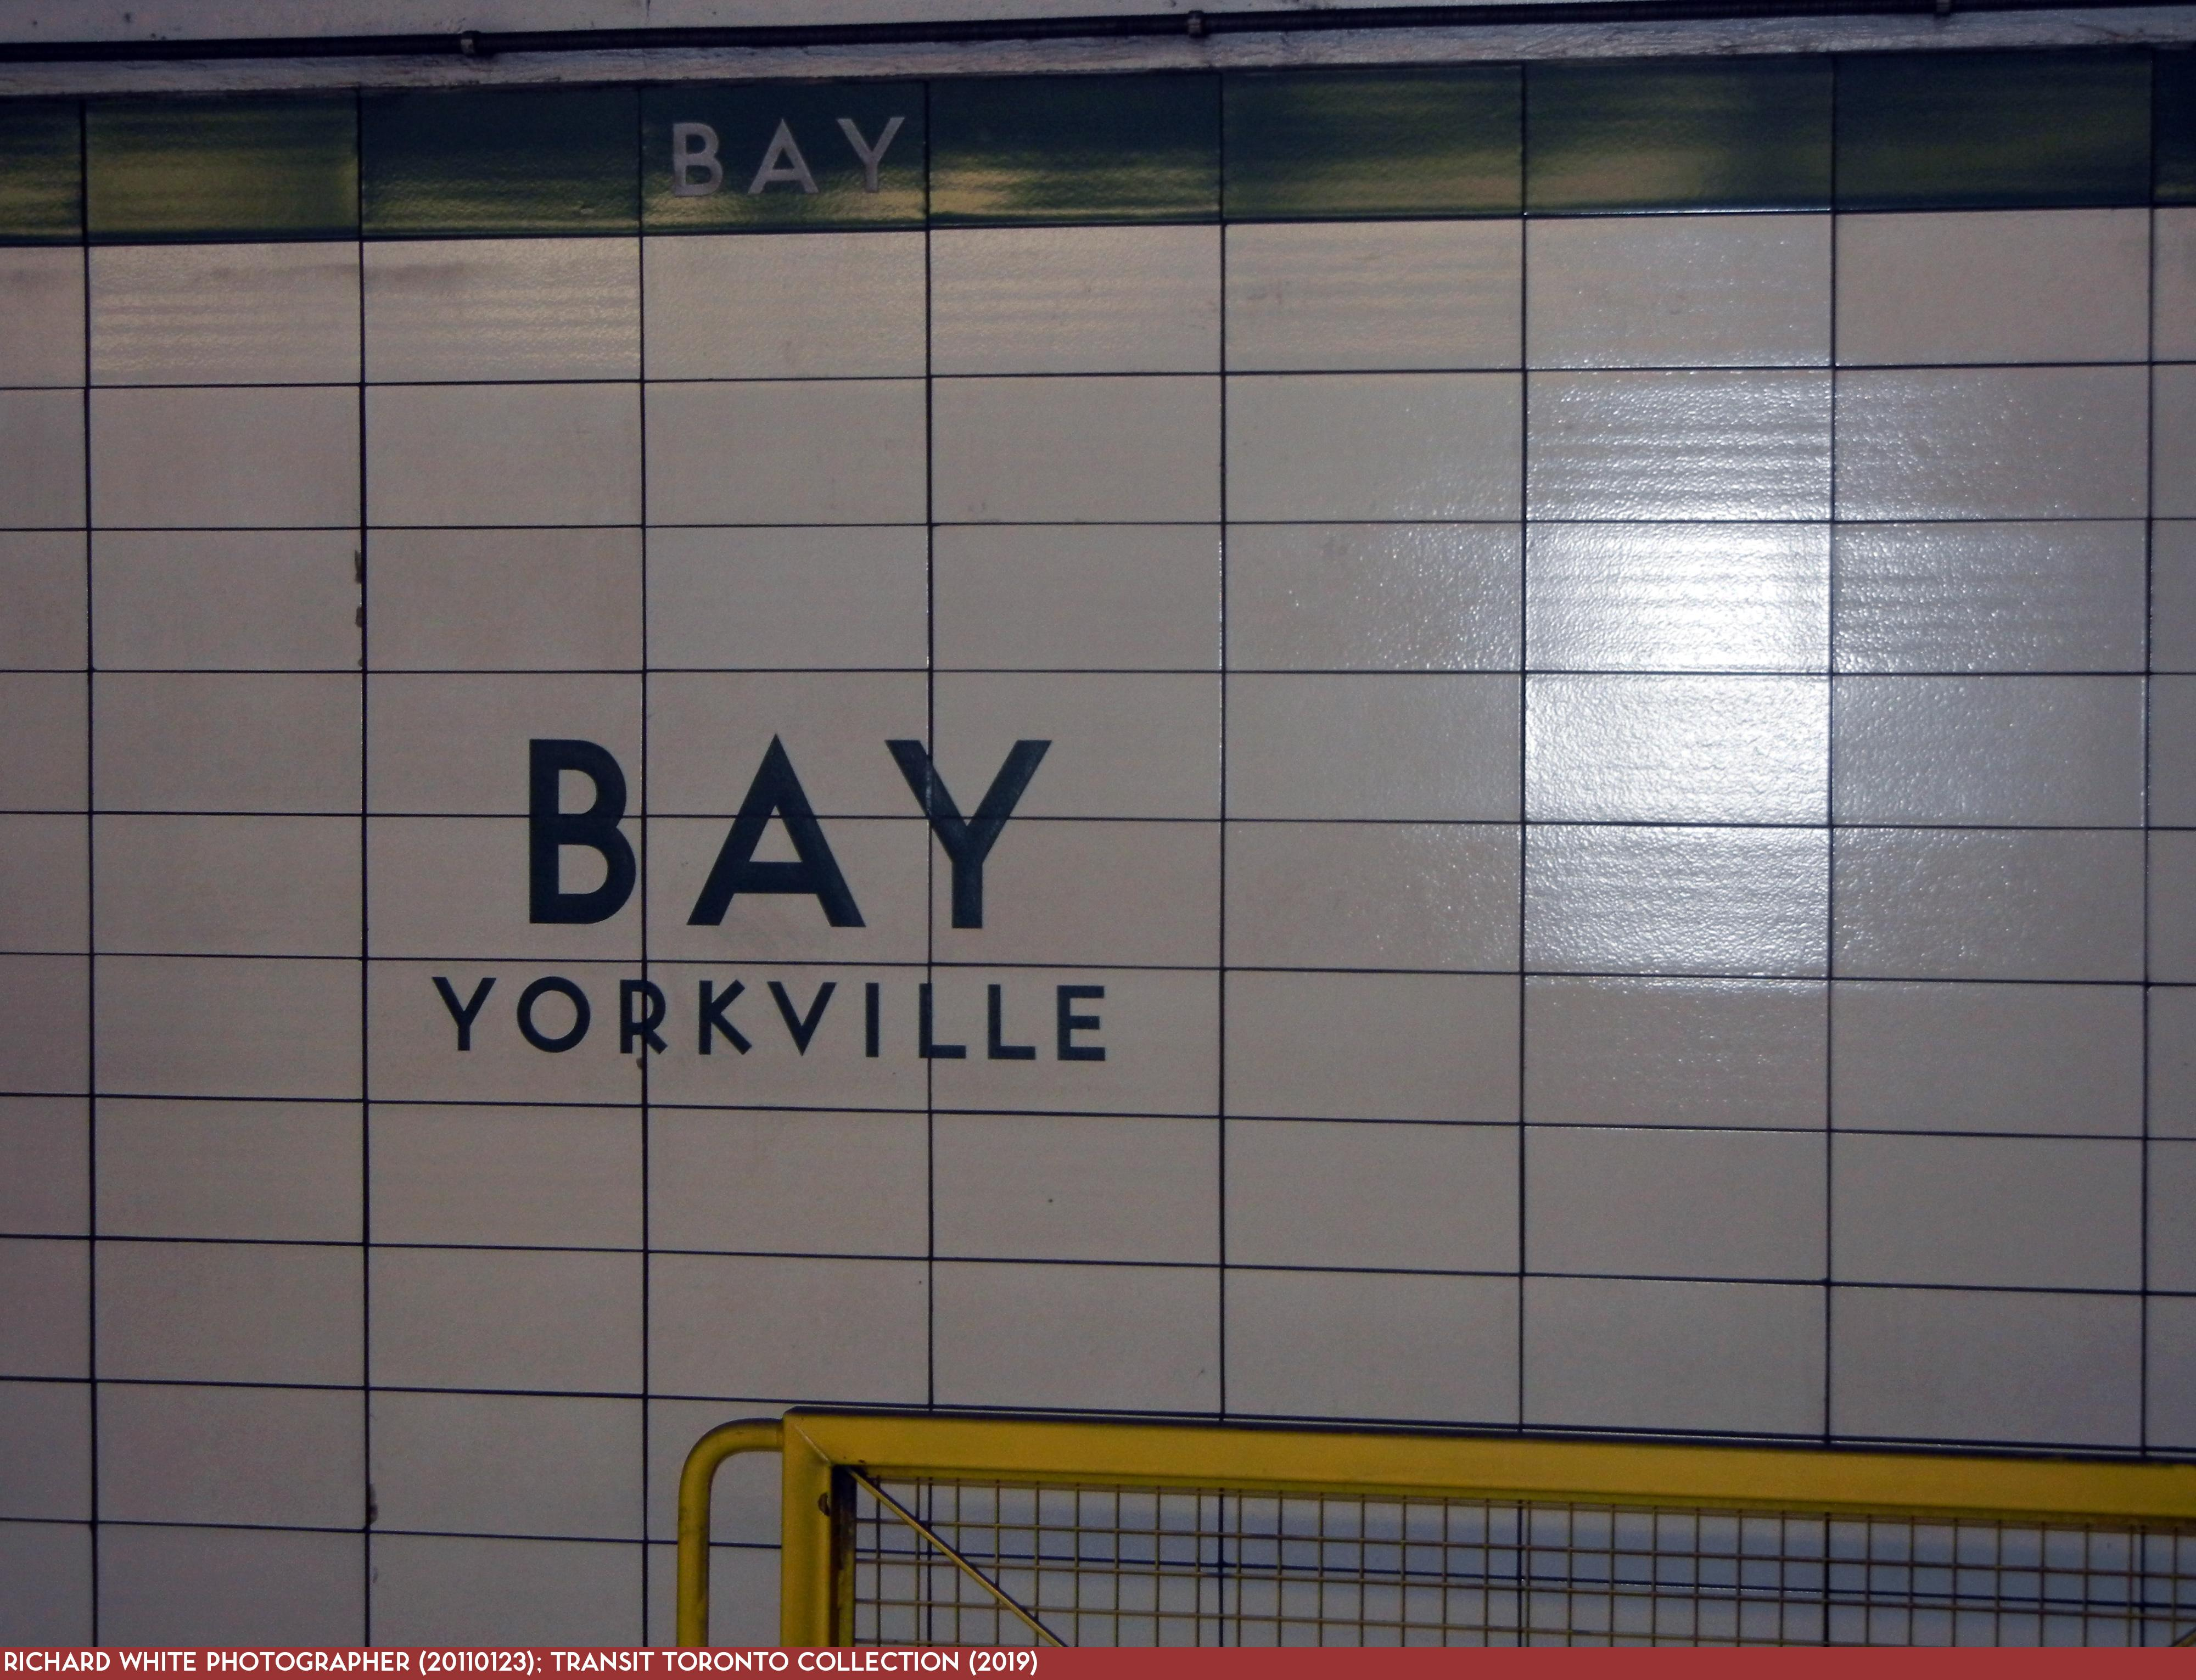 Bloor-Danforth Subway 16 Bay 20110123 Platform Sign-3